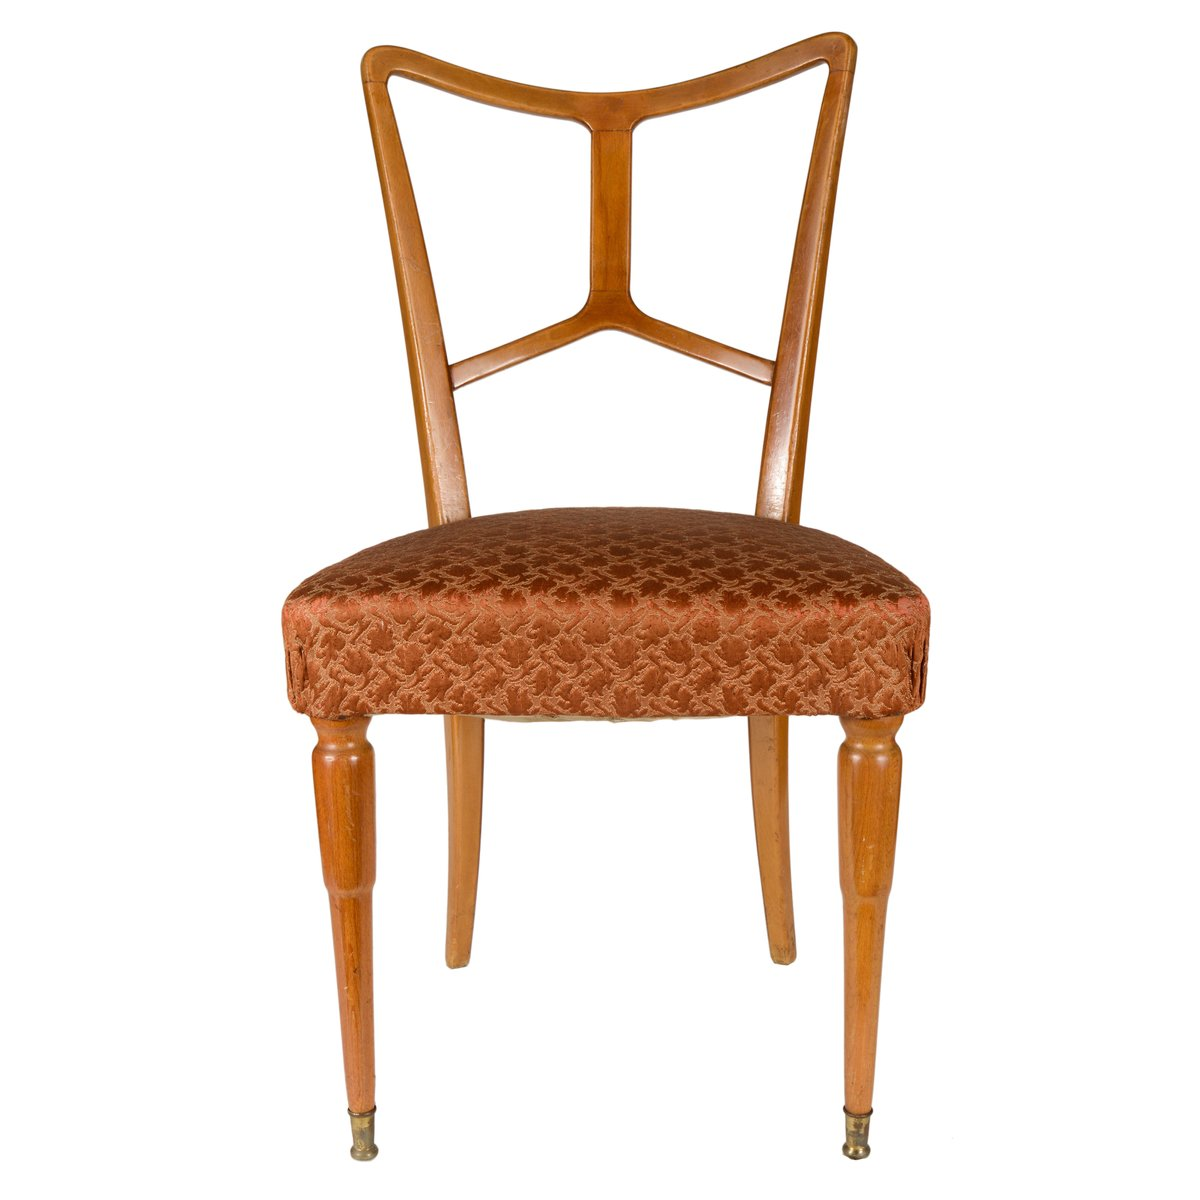 Italian Wooden Dining Chairs 1940s Set Of 4 For Sale At